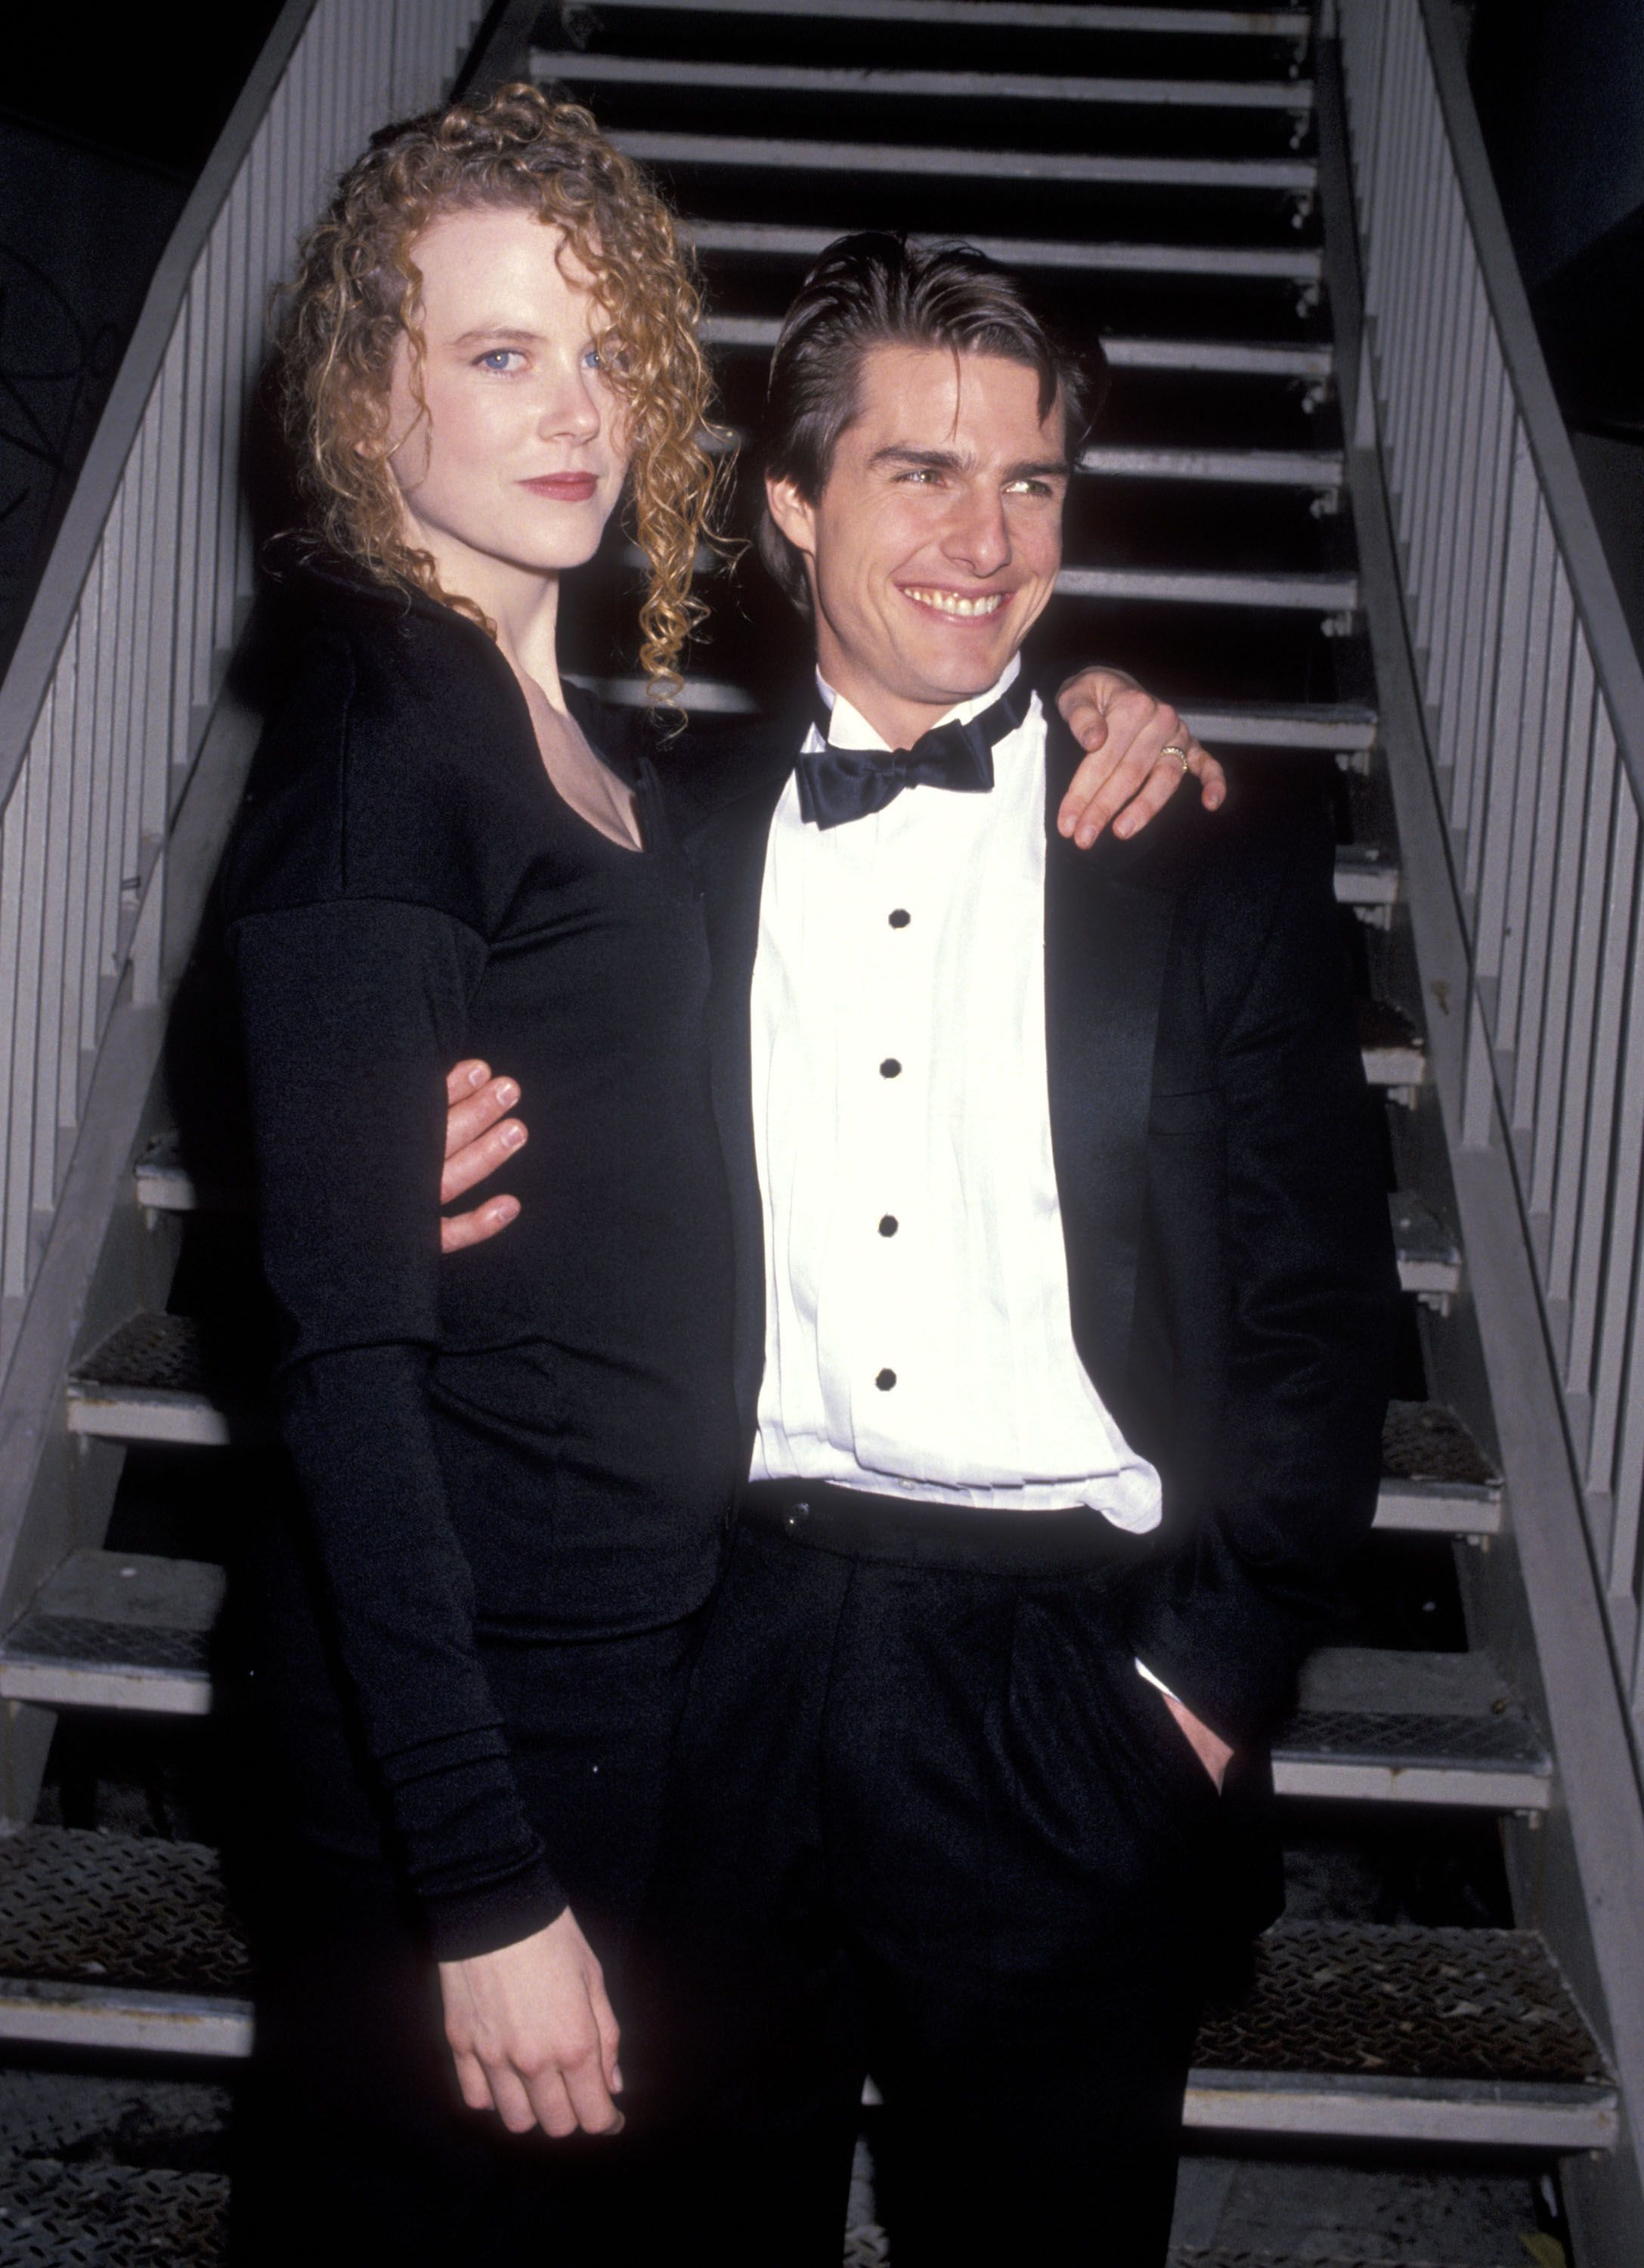 Kidman, pictured in 1991, was married to actor Tom Cruise when she experienced both pregnancy losses.